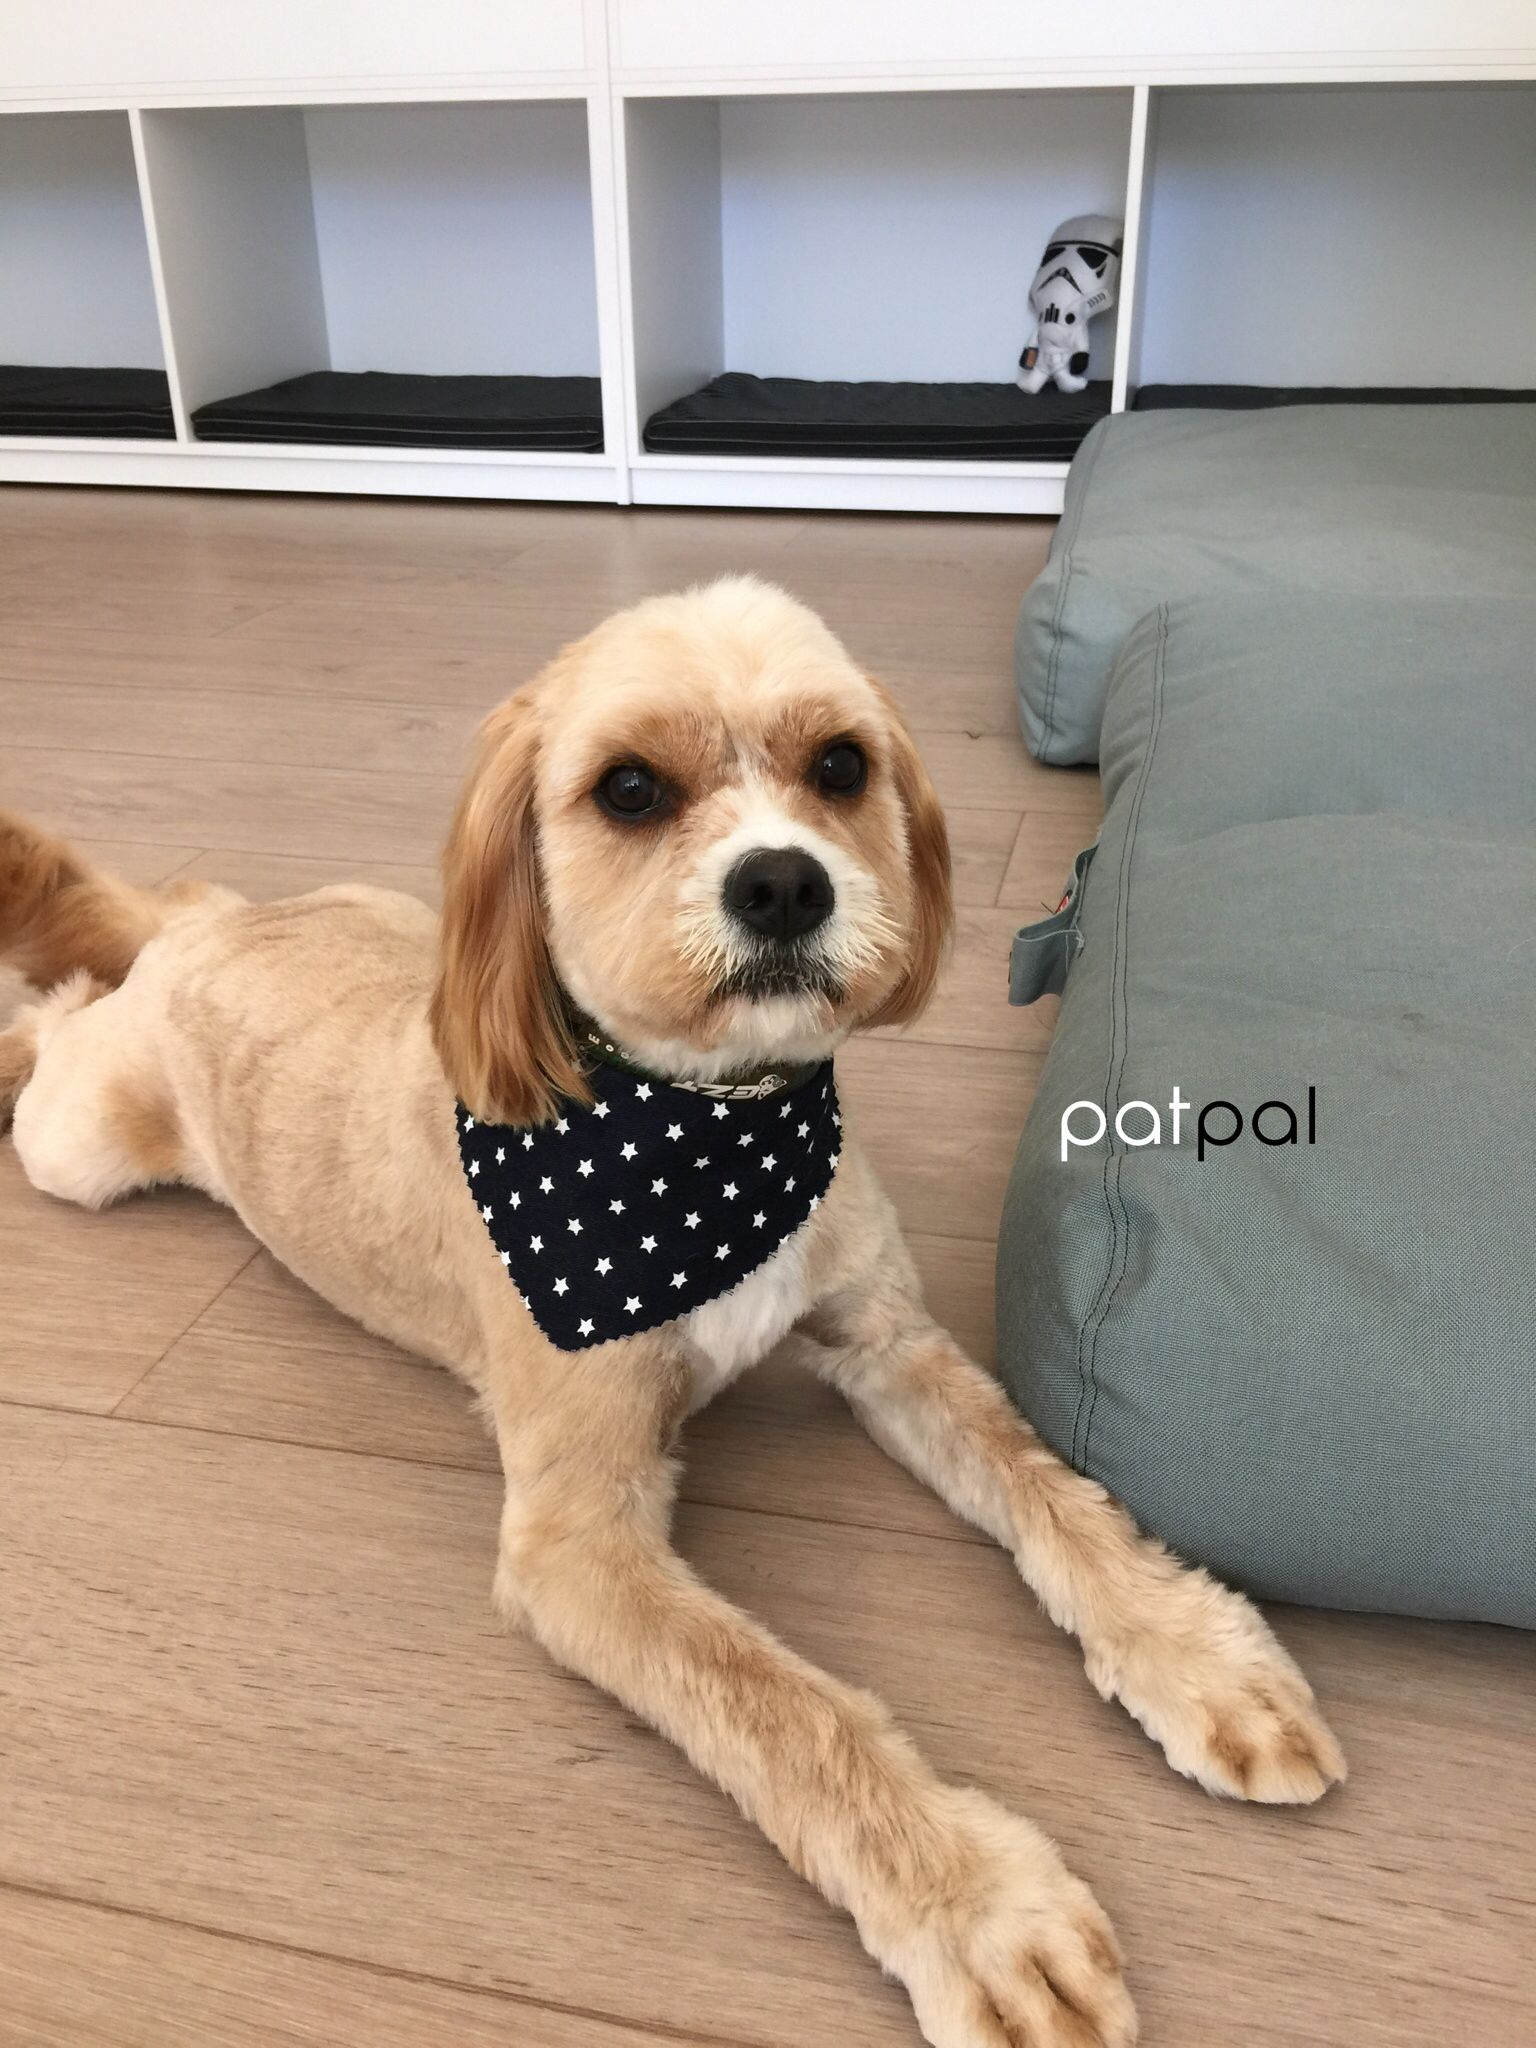 Short hair cut for cavoodle at patpal dog grooming willoughby short hair cut for cavoodle at patpal dog grooming willoughby sydney patpaldoggrooming solutioingenieria Choice Image